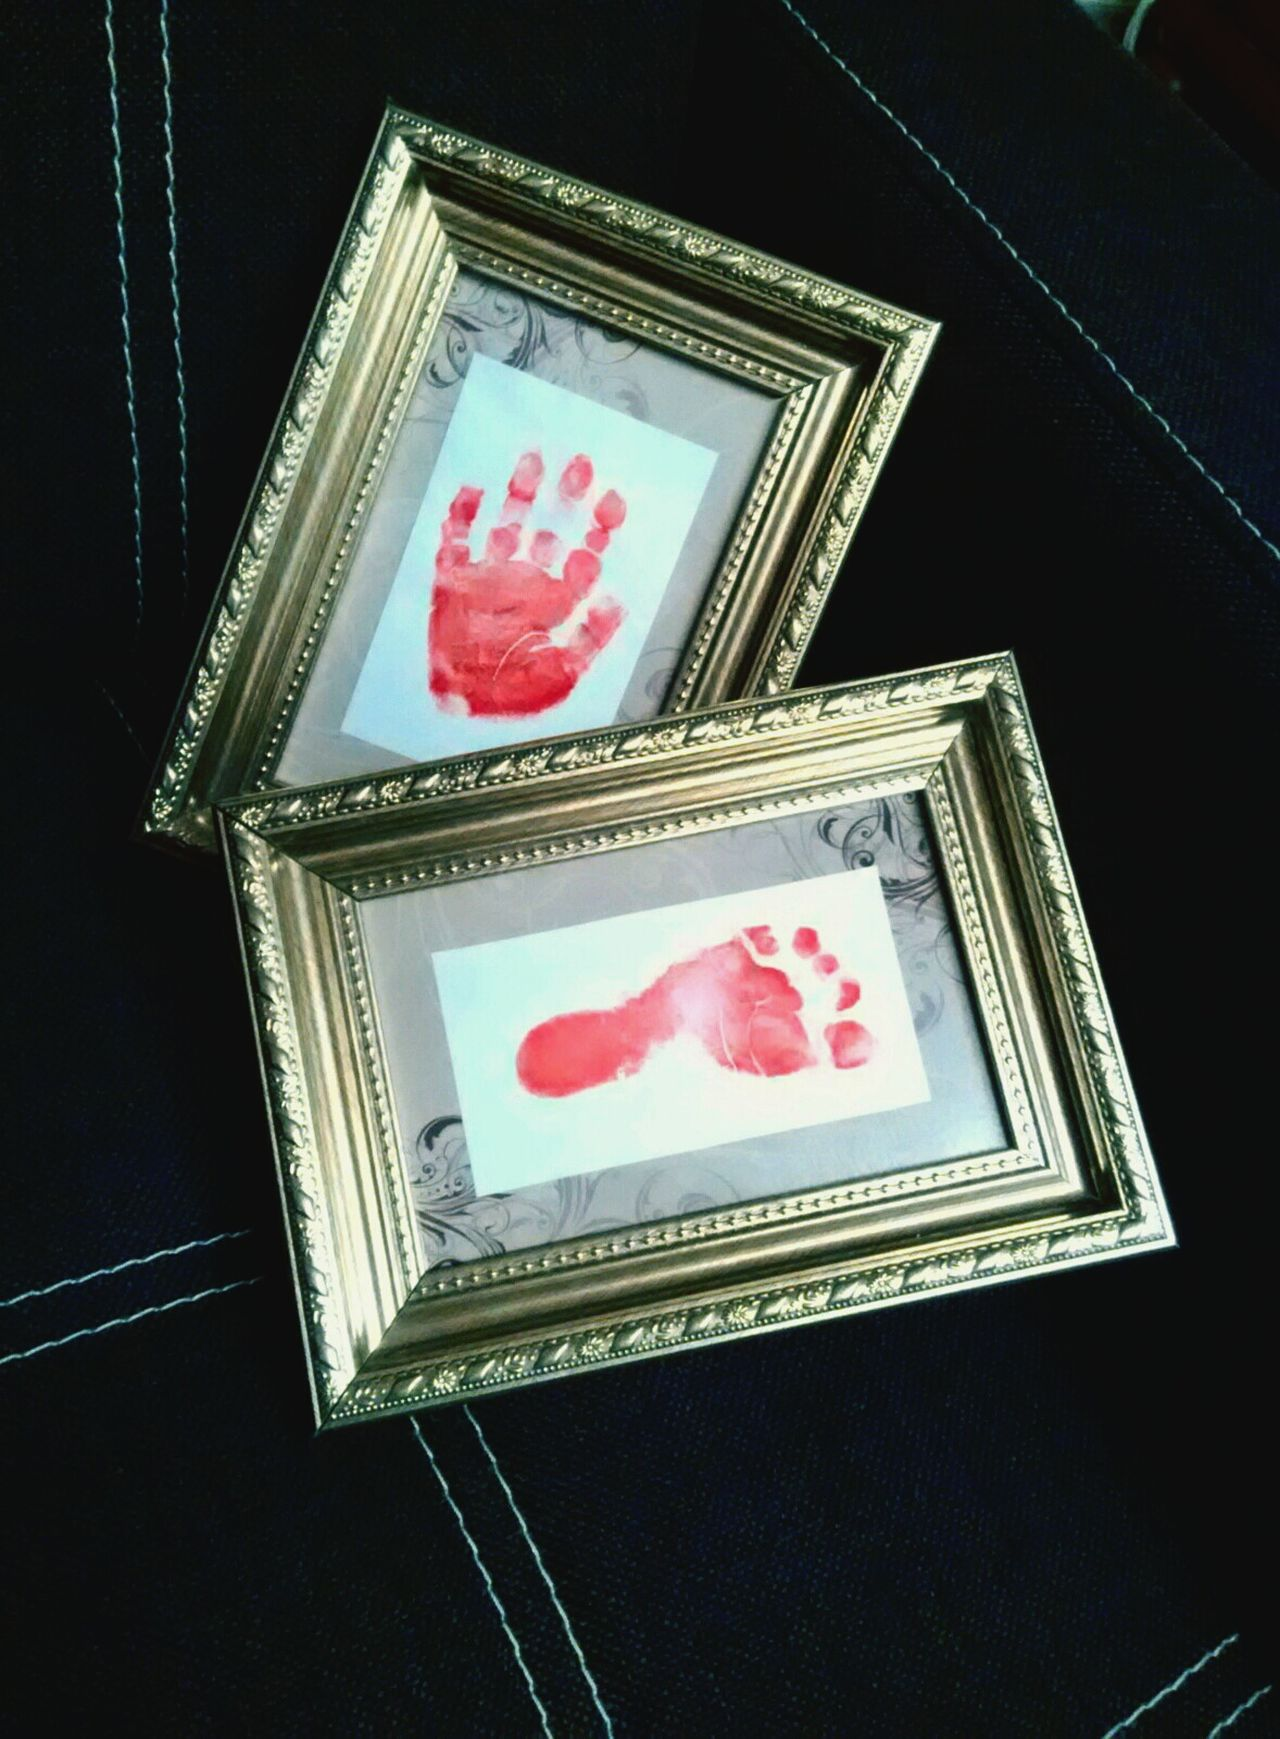 Handprint FootPrint Handprints HandPrinted Baby Handprint Footprints Handprinting Handmade Frame Golden Frame Art ArtWork Masterpiece Masterpieces Gallery Family Baby Red Gold Print Arte Art? 43 Golden Moments Love FamilyLove